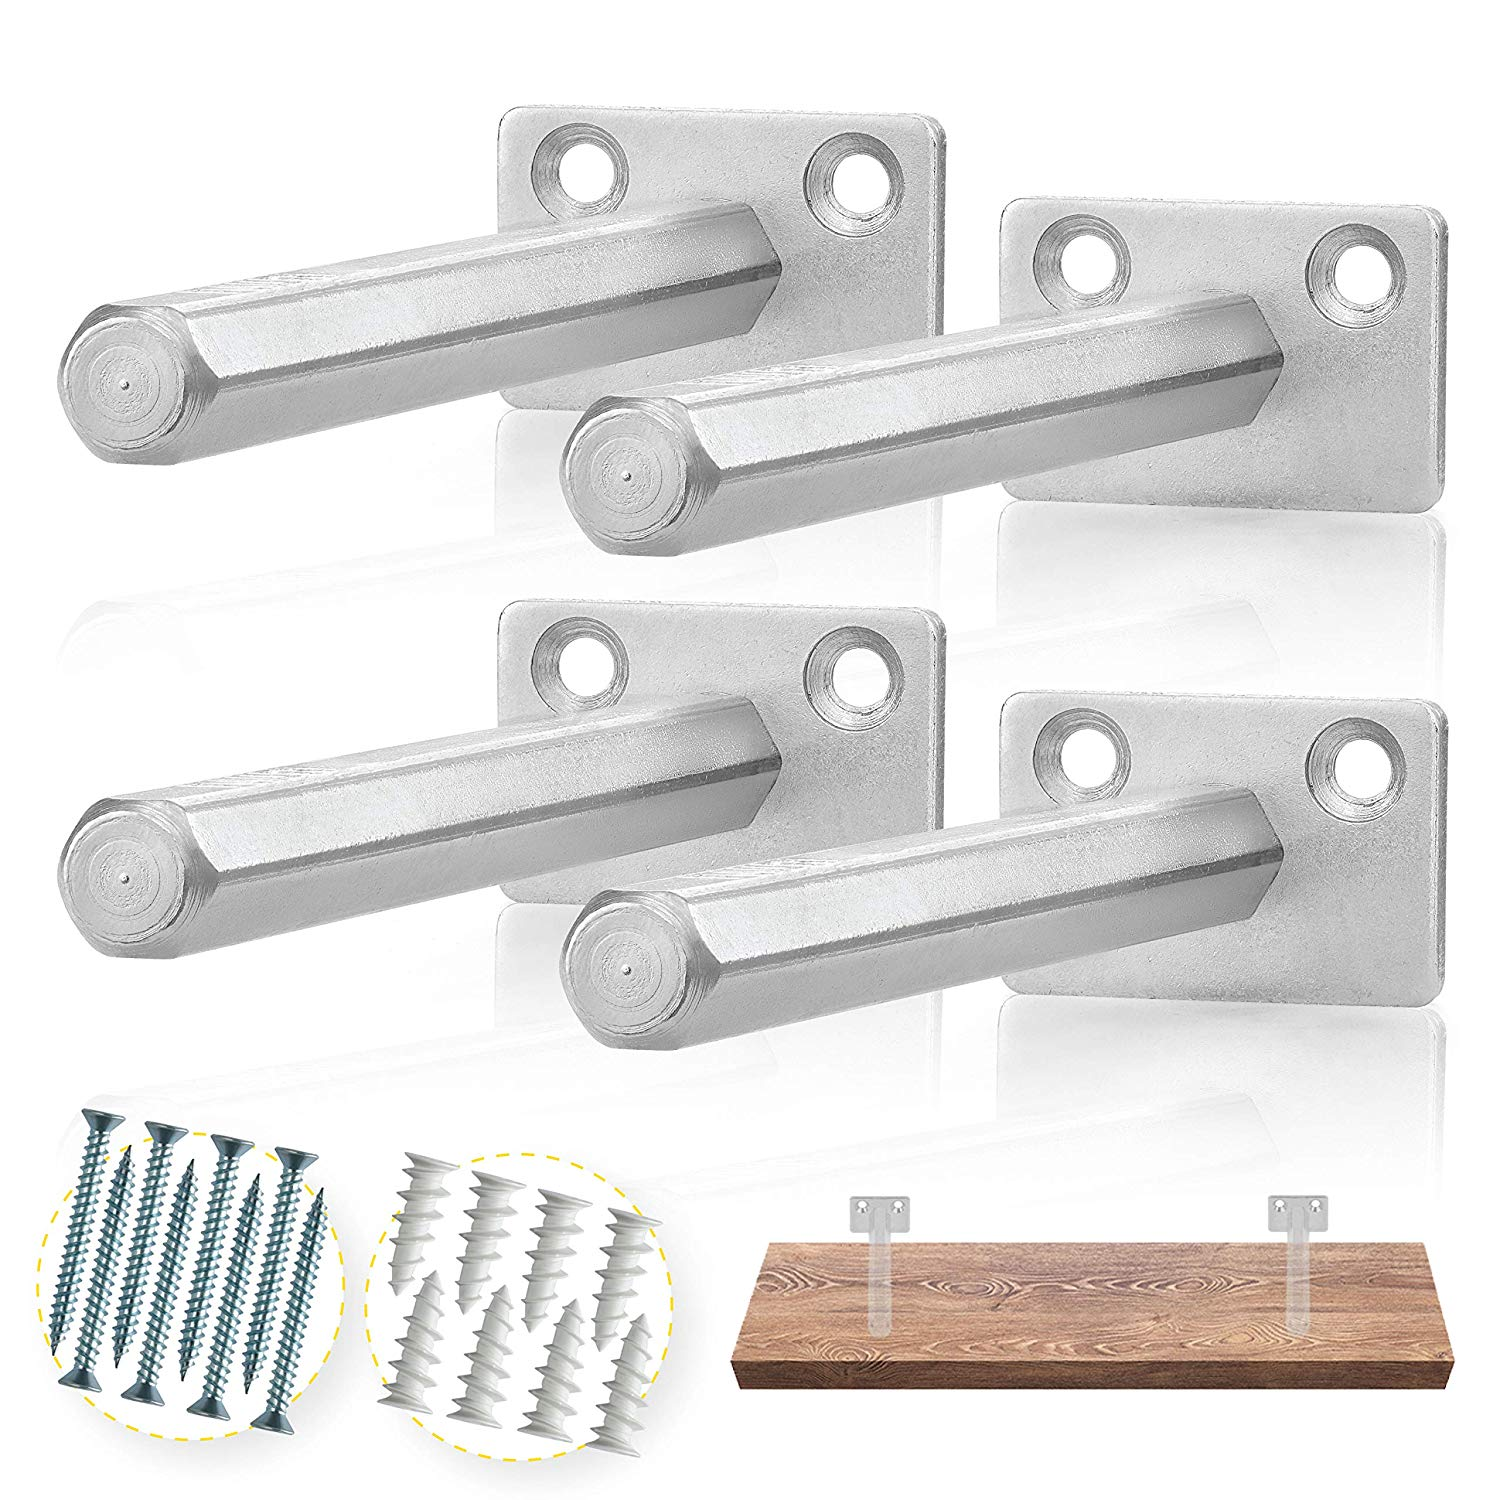 batoda floating shelf bracket pcs galvanized steel xuzl concealed support brackets blind supports hidden for wood shelves small wall mount entertainment center ikea ribba ture